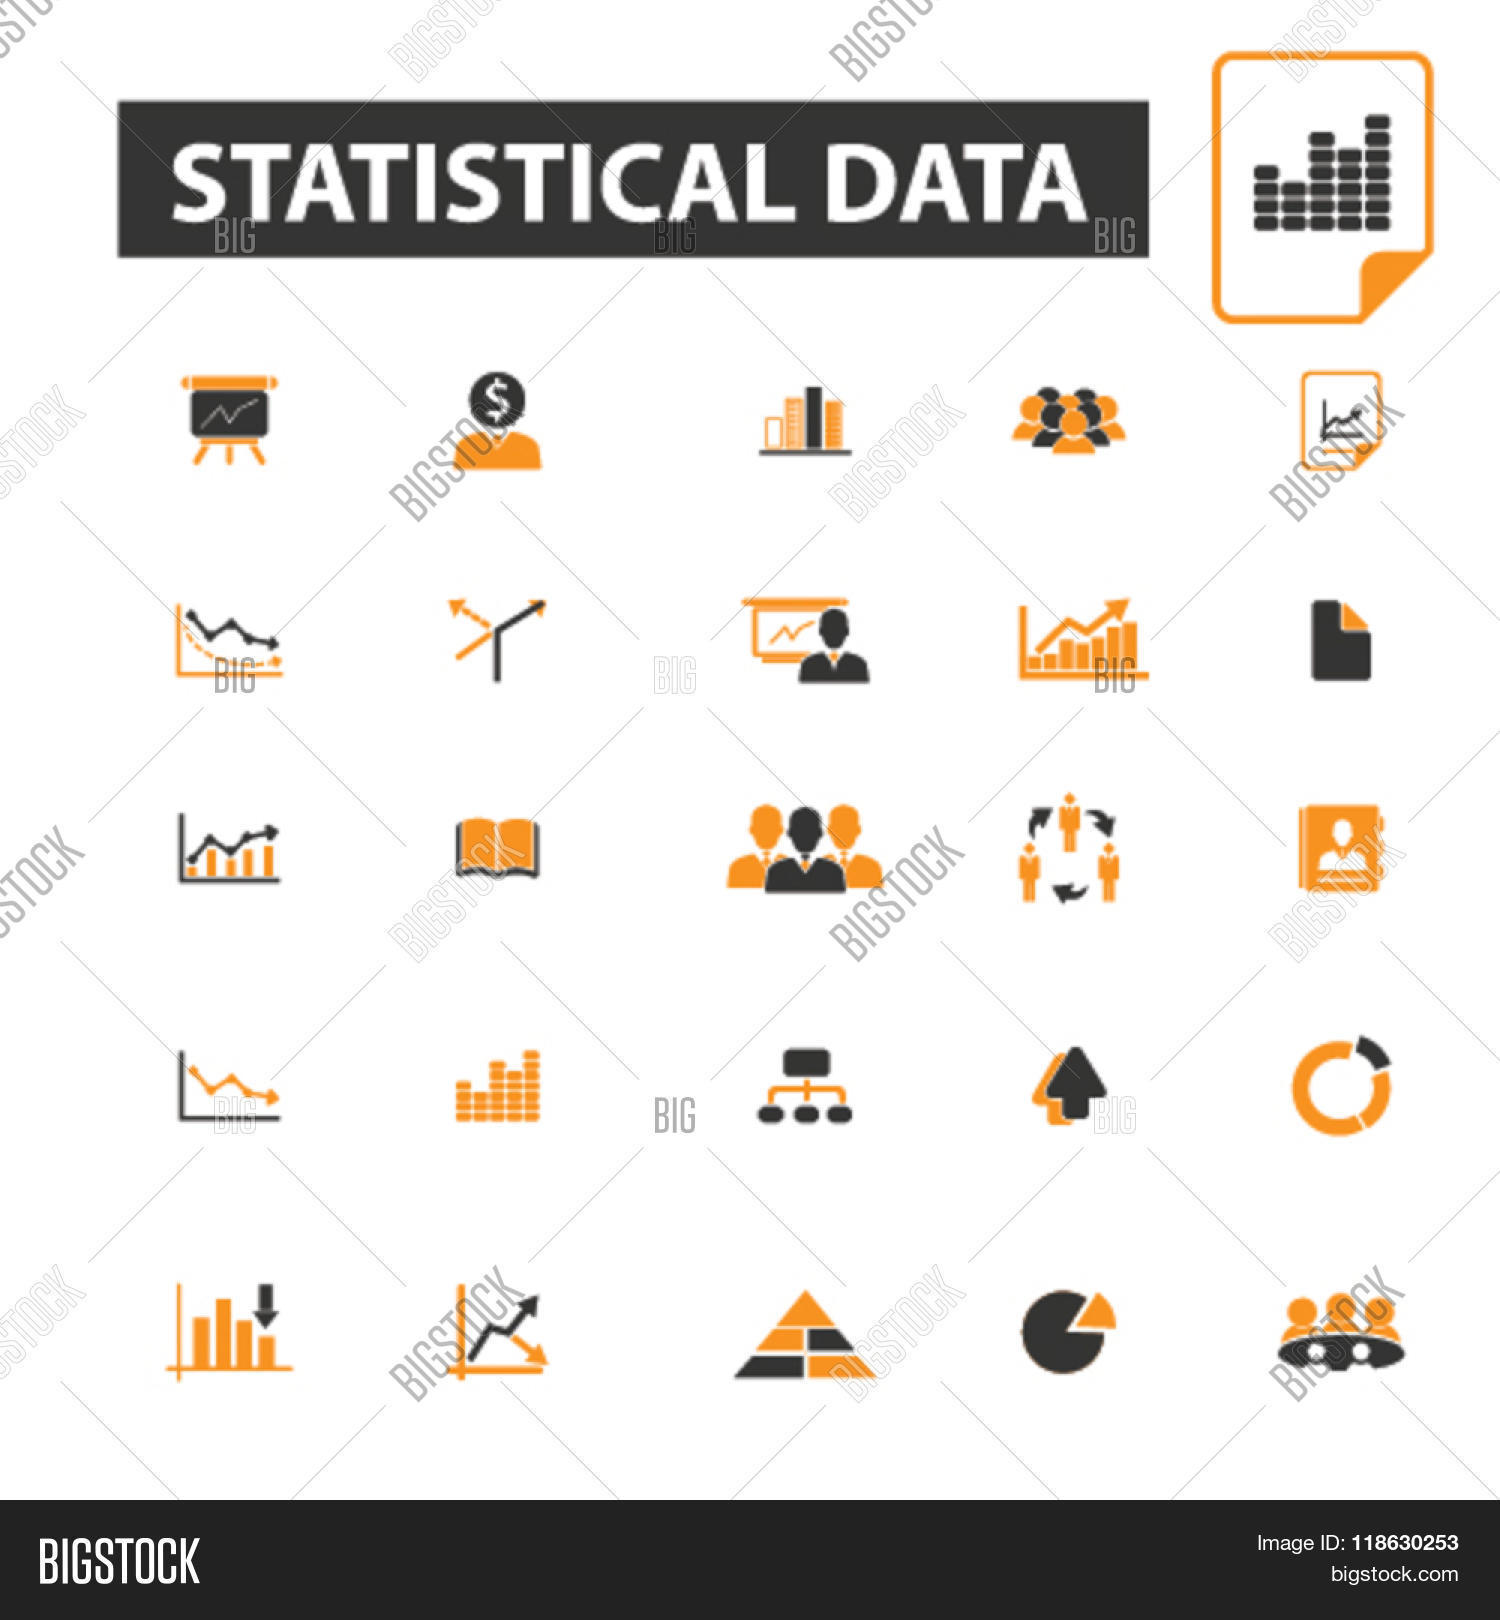 statistical analysis of business data Regression analysis is one of the most important statistical techniques for business applications it's a statistical methodology that helps estimate the strength and direction of the.